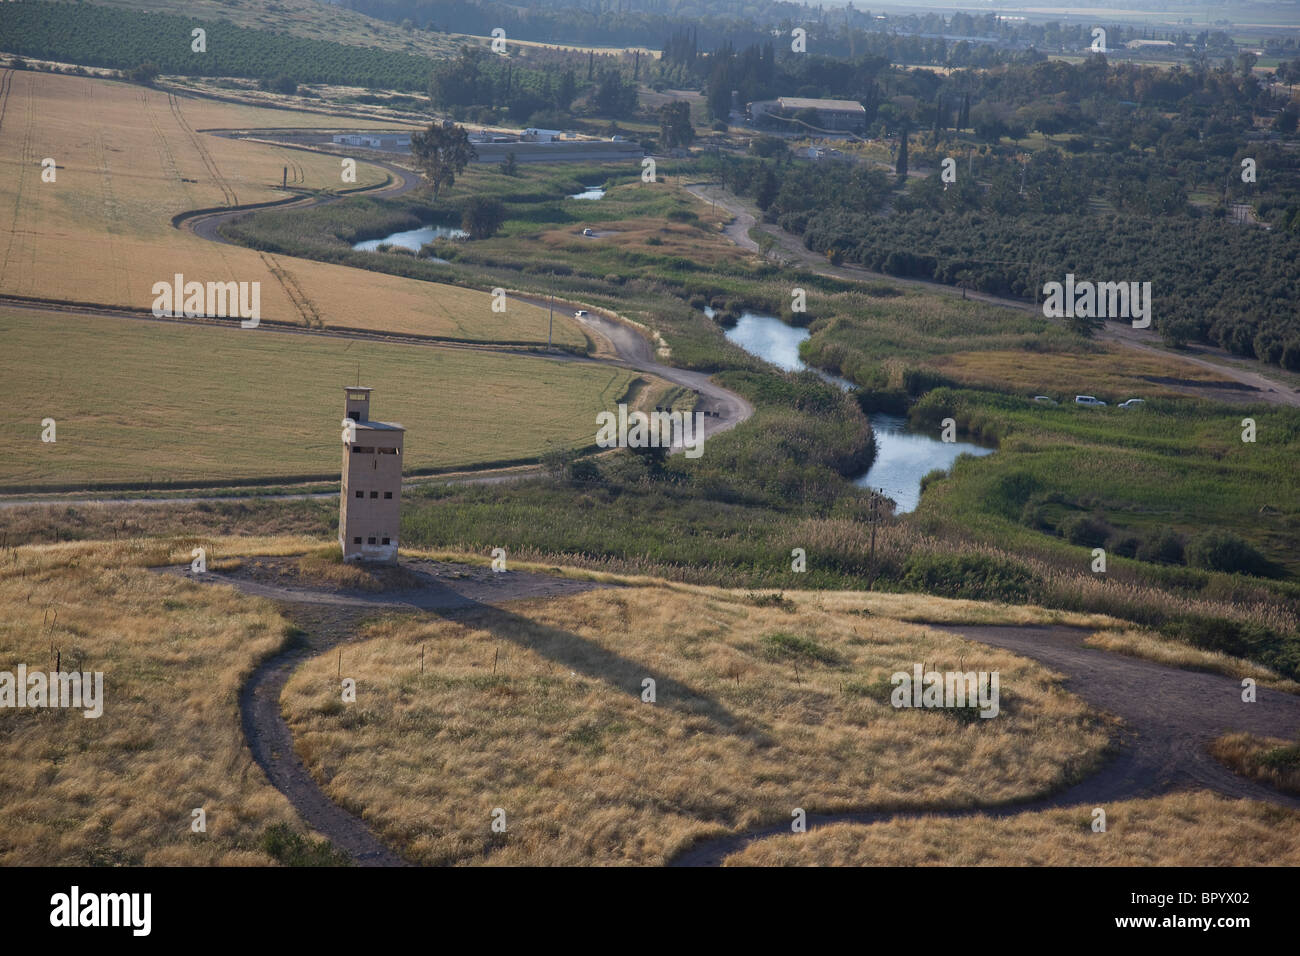 Aerial photograph of Tel Shokek in the Jordan valley - Stock Image